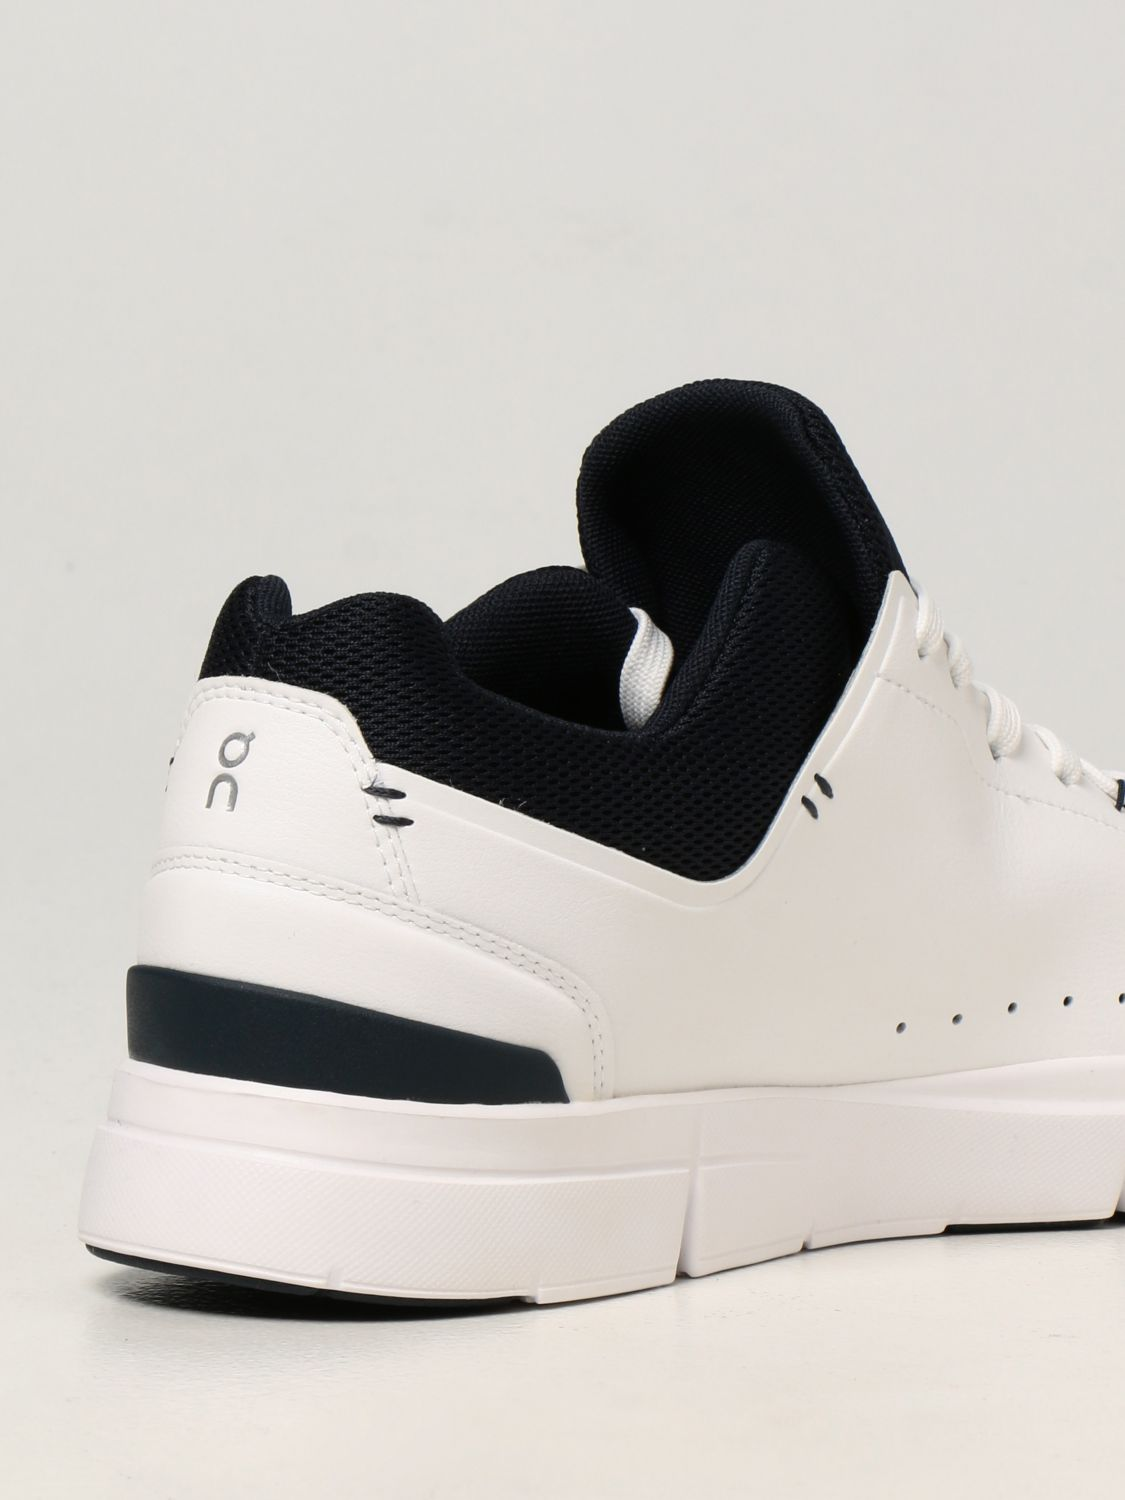 Baskets The Roger: Chaussures homme The Roger blanc 3